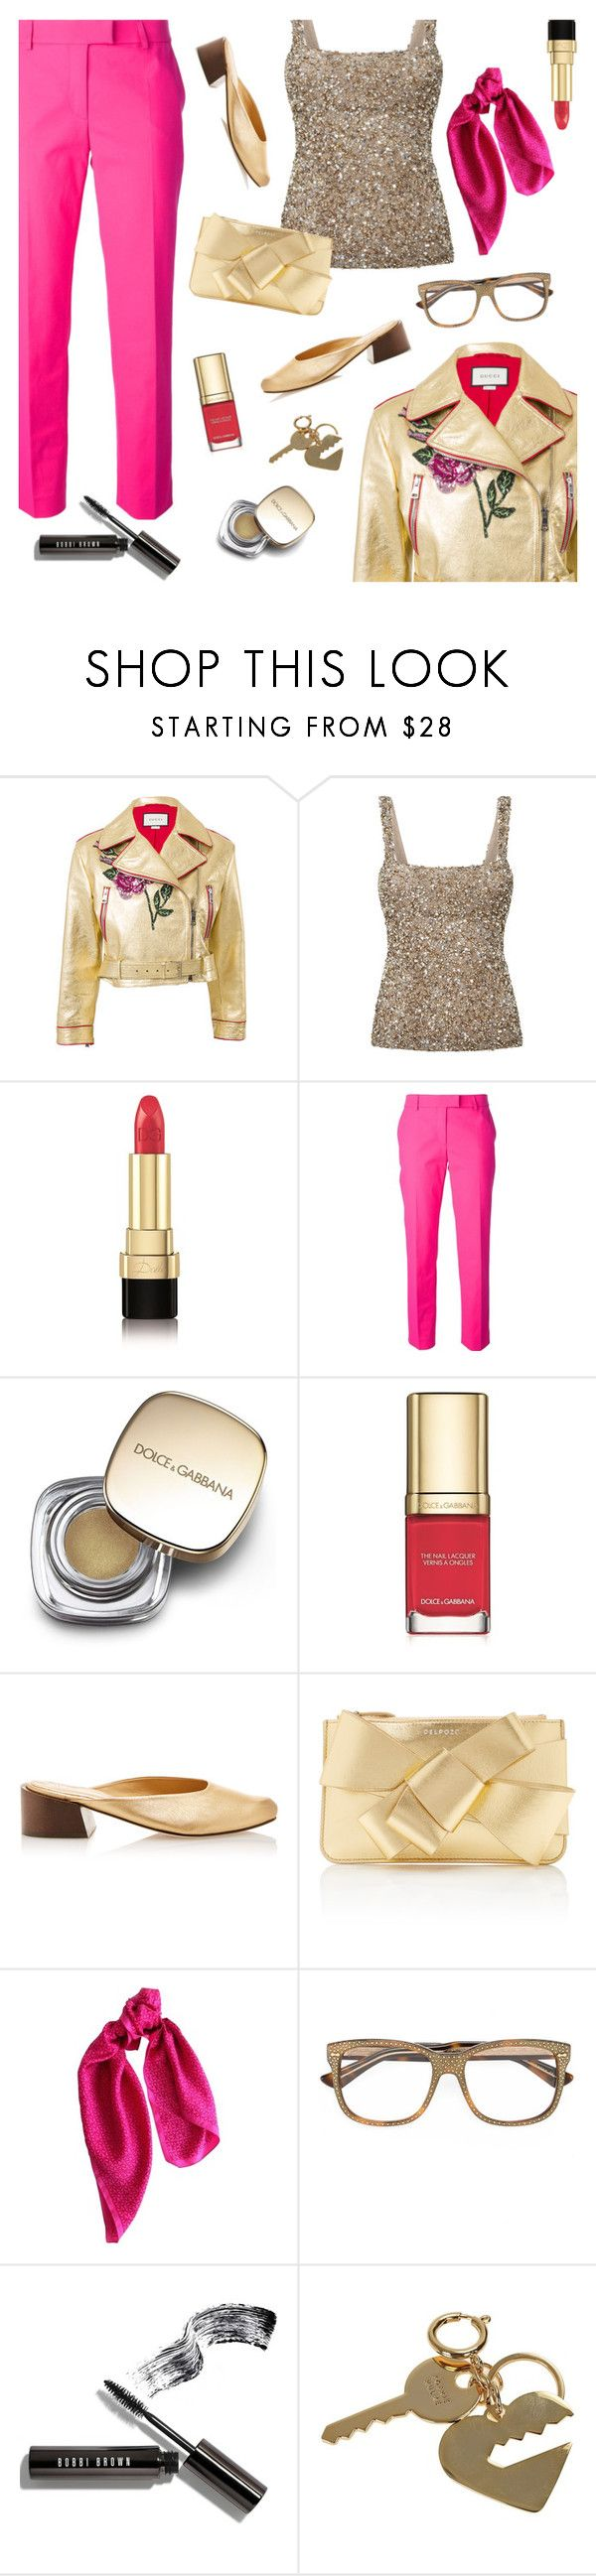 """Let's Make this Night Sparkle a Little Extra!"" by sproetje ❤ liked on Polyvore featuring Gucci, Rachel Gilbert, Dolce&Gabbana, Moschino, Mari Giudicelli, Delpozo, DKNY, Bobbi Brown Cosmetics, Sophie Hulme and NightOut"